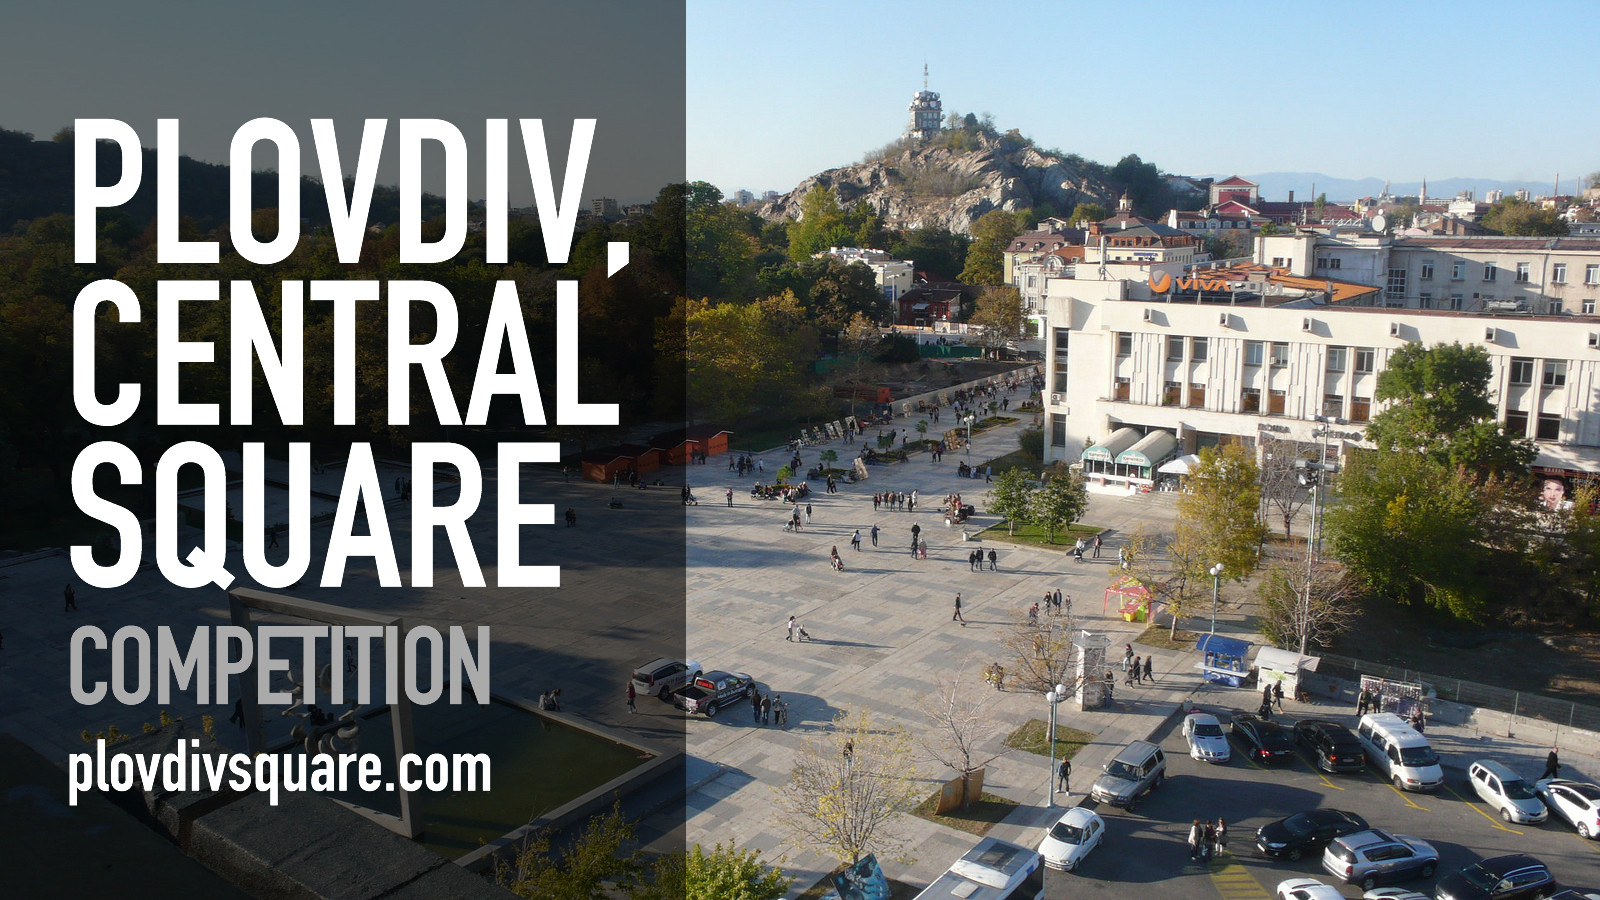 Plovdiv Central Square Architectural Competition